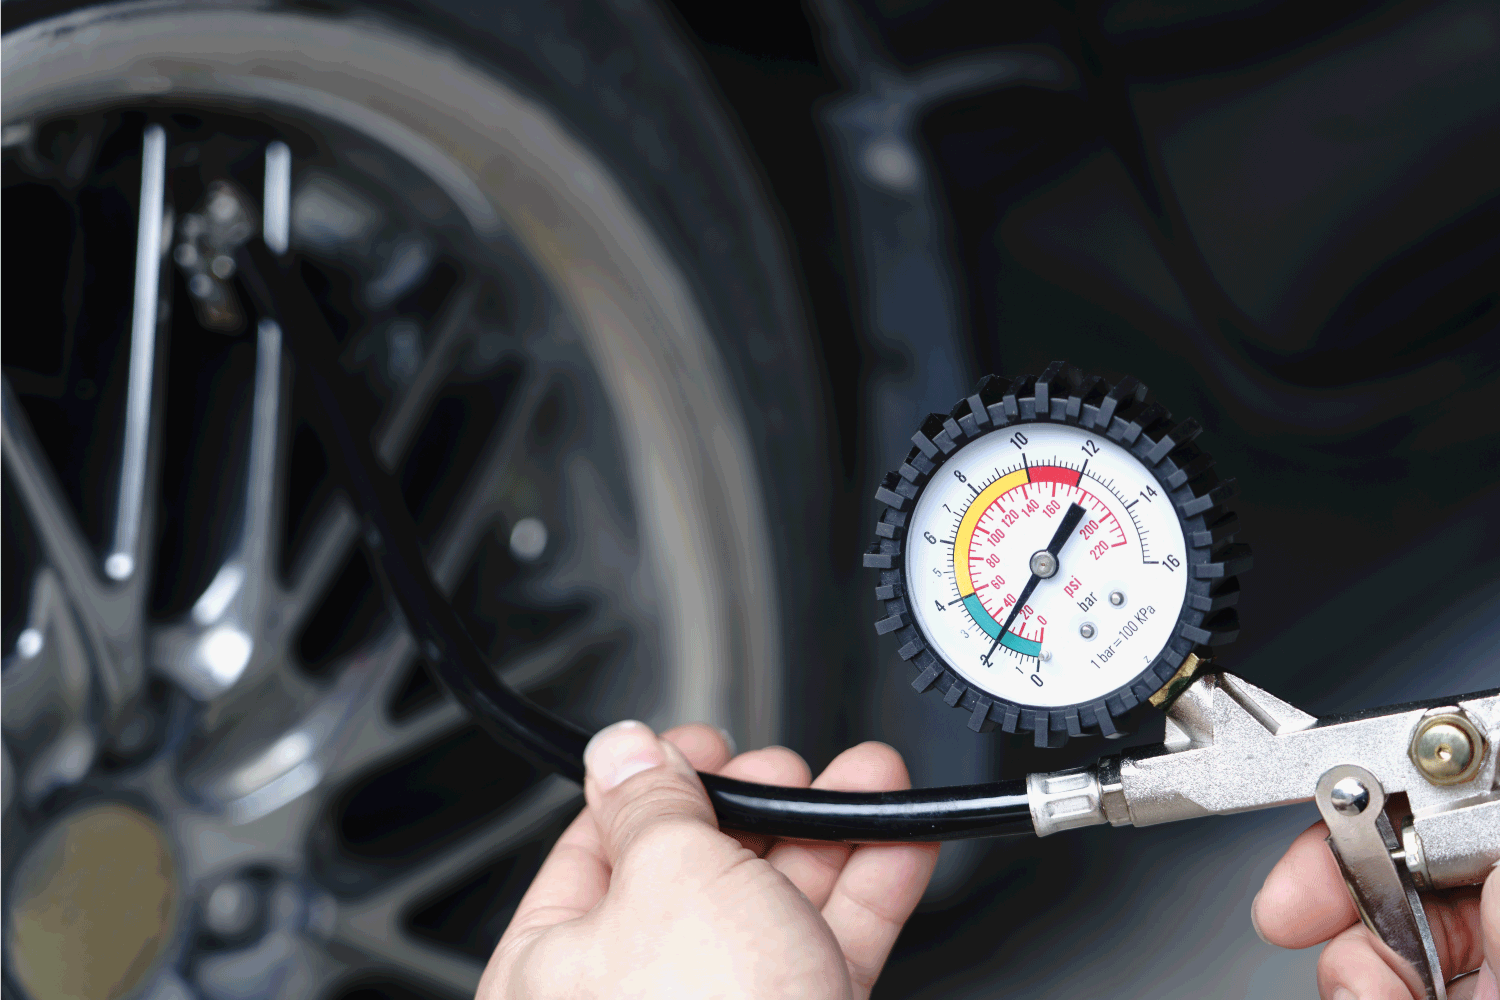 Close up mechanic inflating tire hand holding gauge pressure for checking and filling air in car tire.